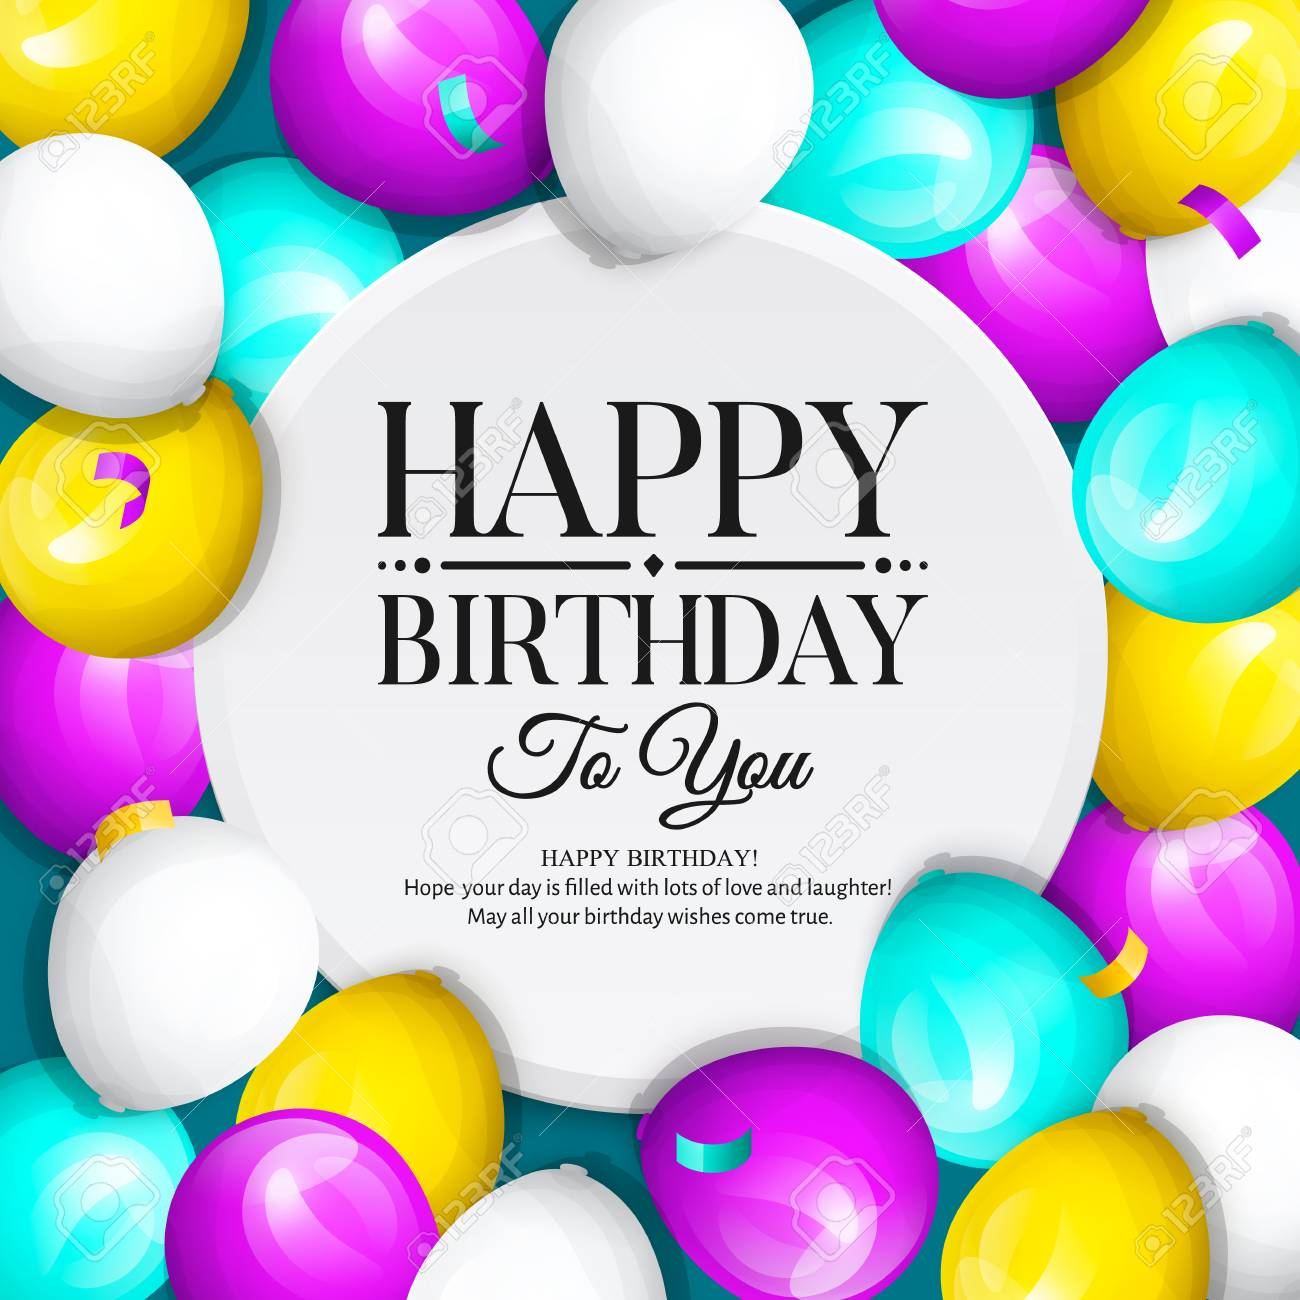 Happy Birthday Greeting Card Bunch Of Colorful Balloons And Confetti Stylish Lettering On Background